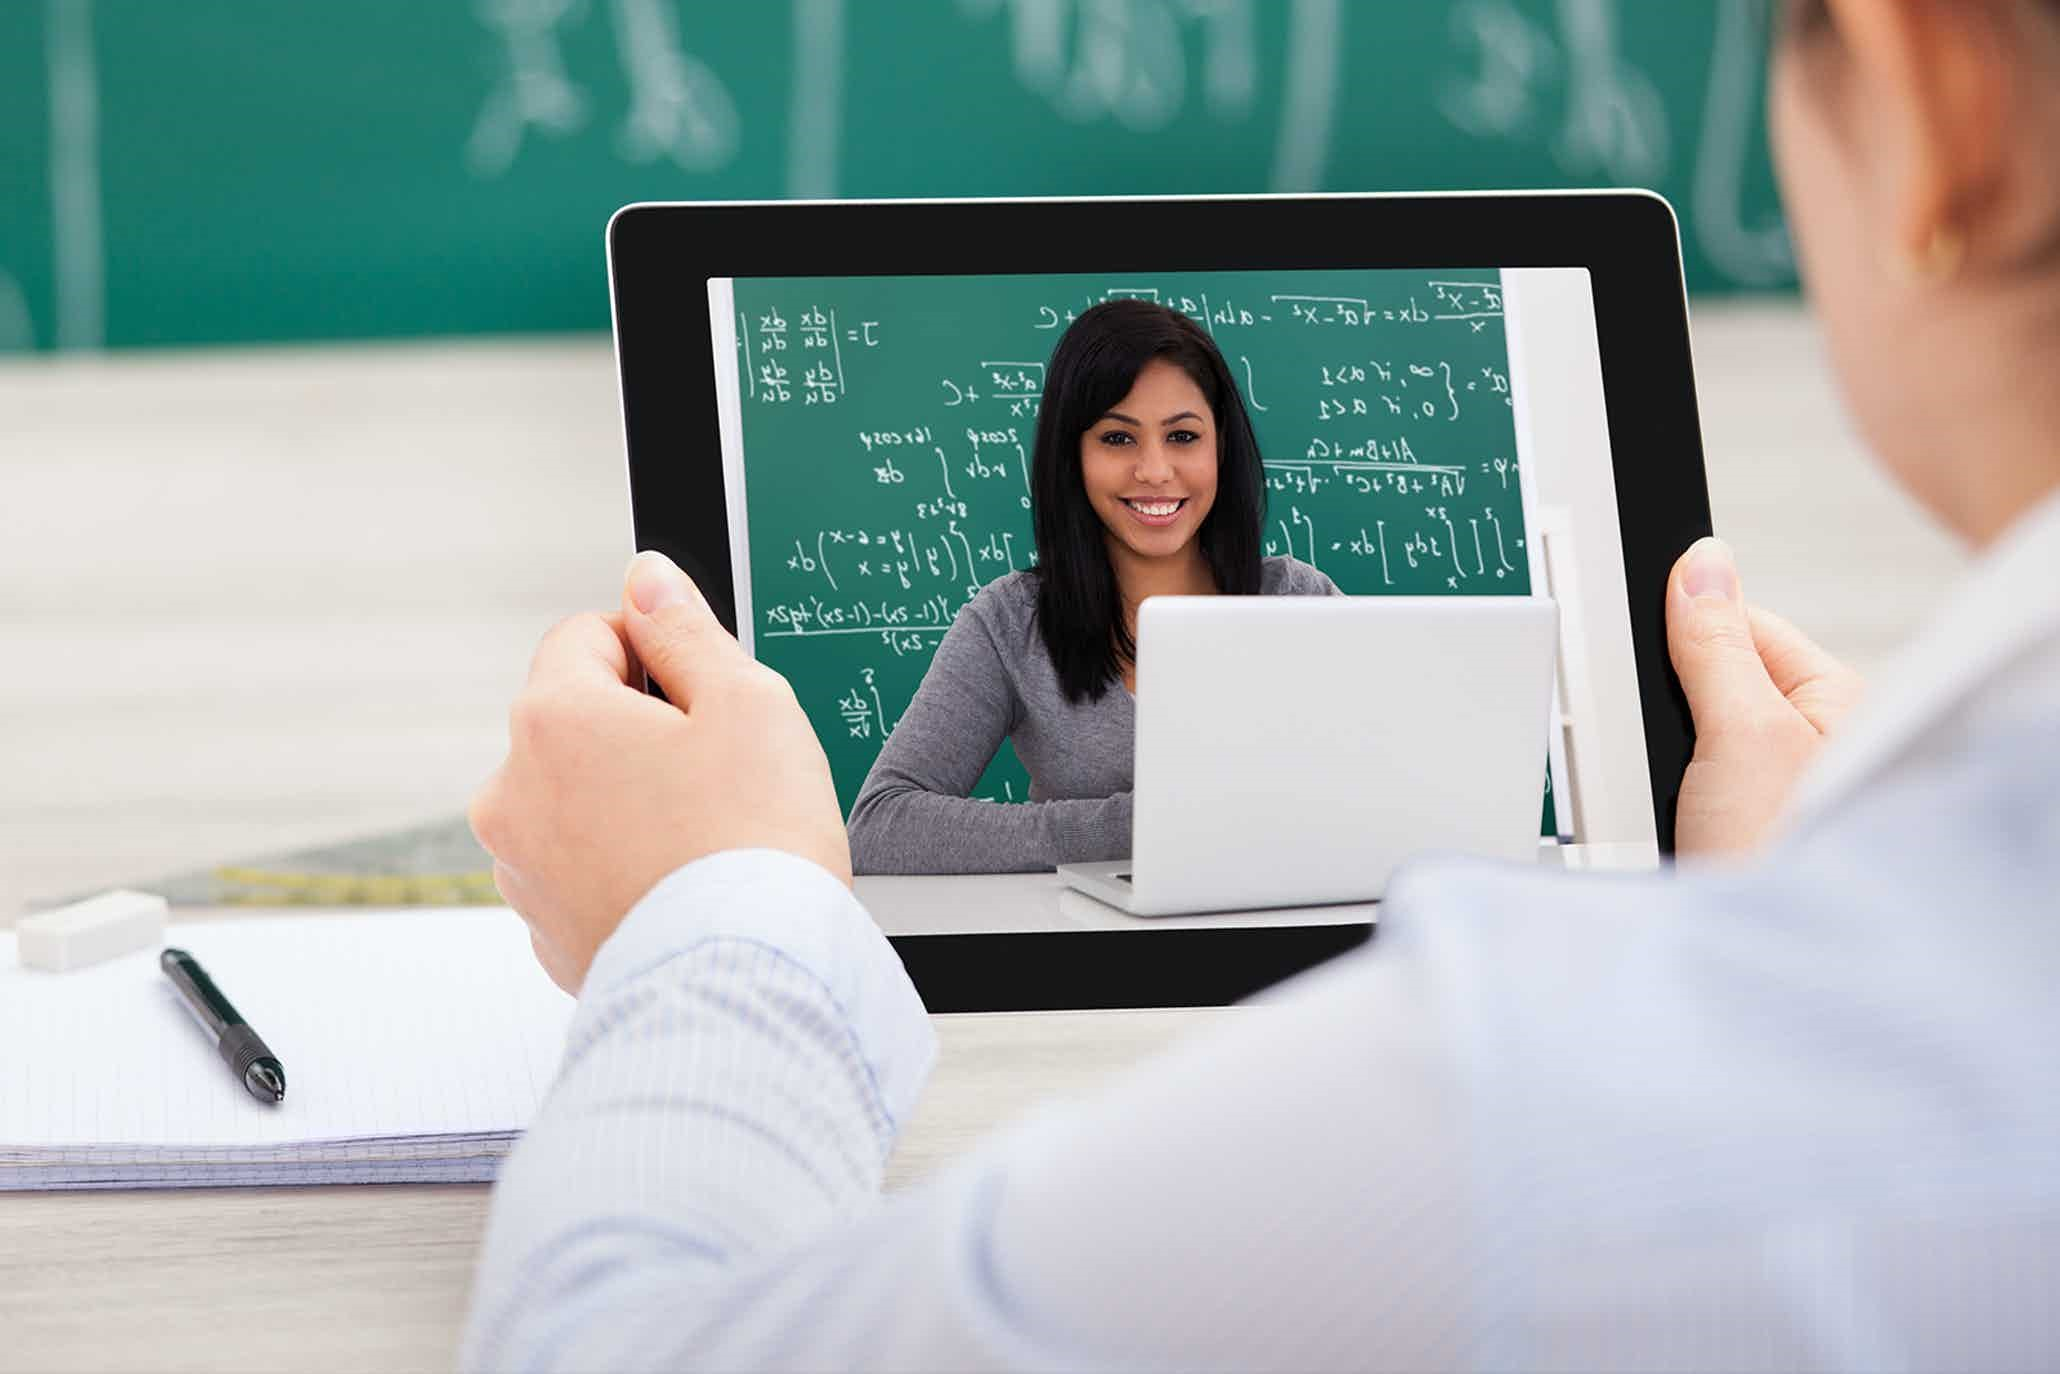 The Main Difficulties Students Face with Distance Education in the Time of Quarantine